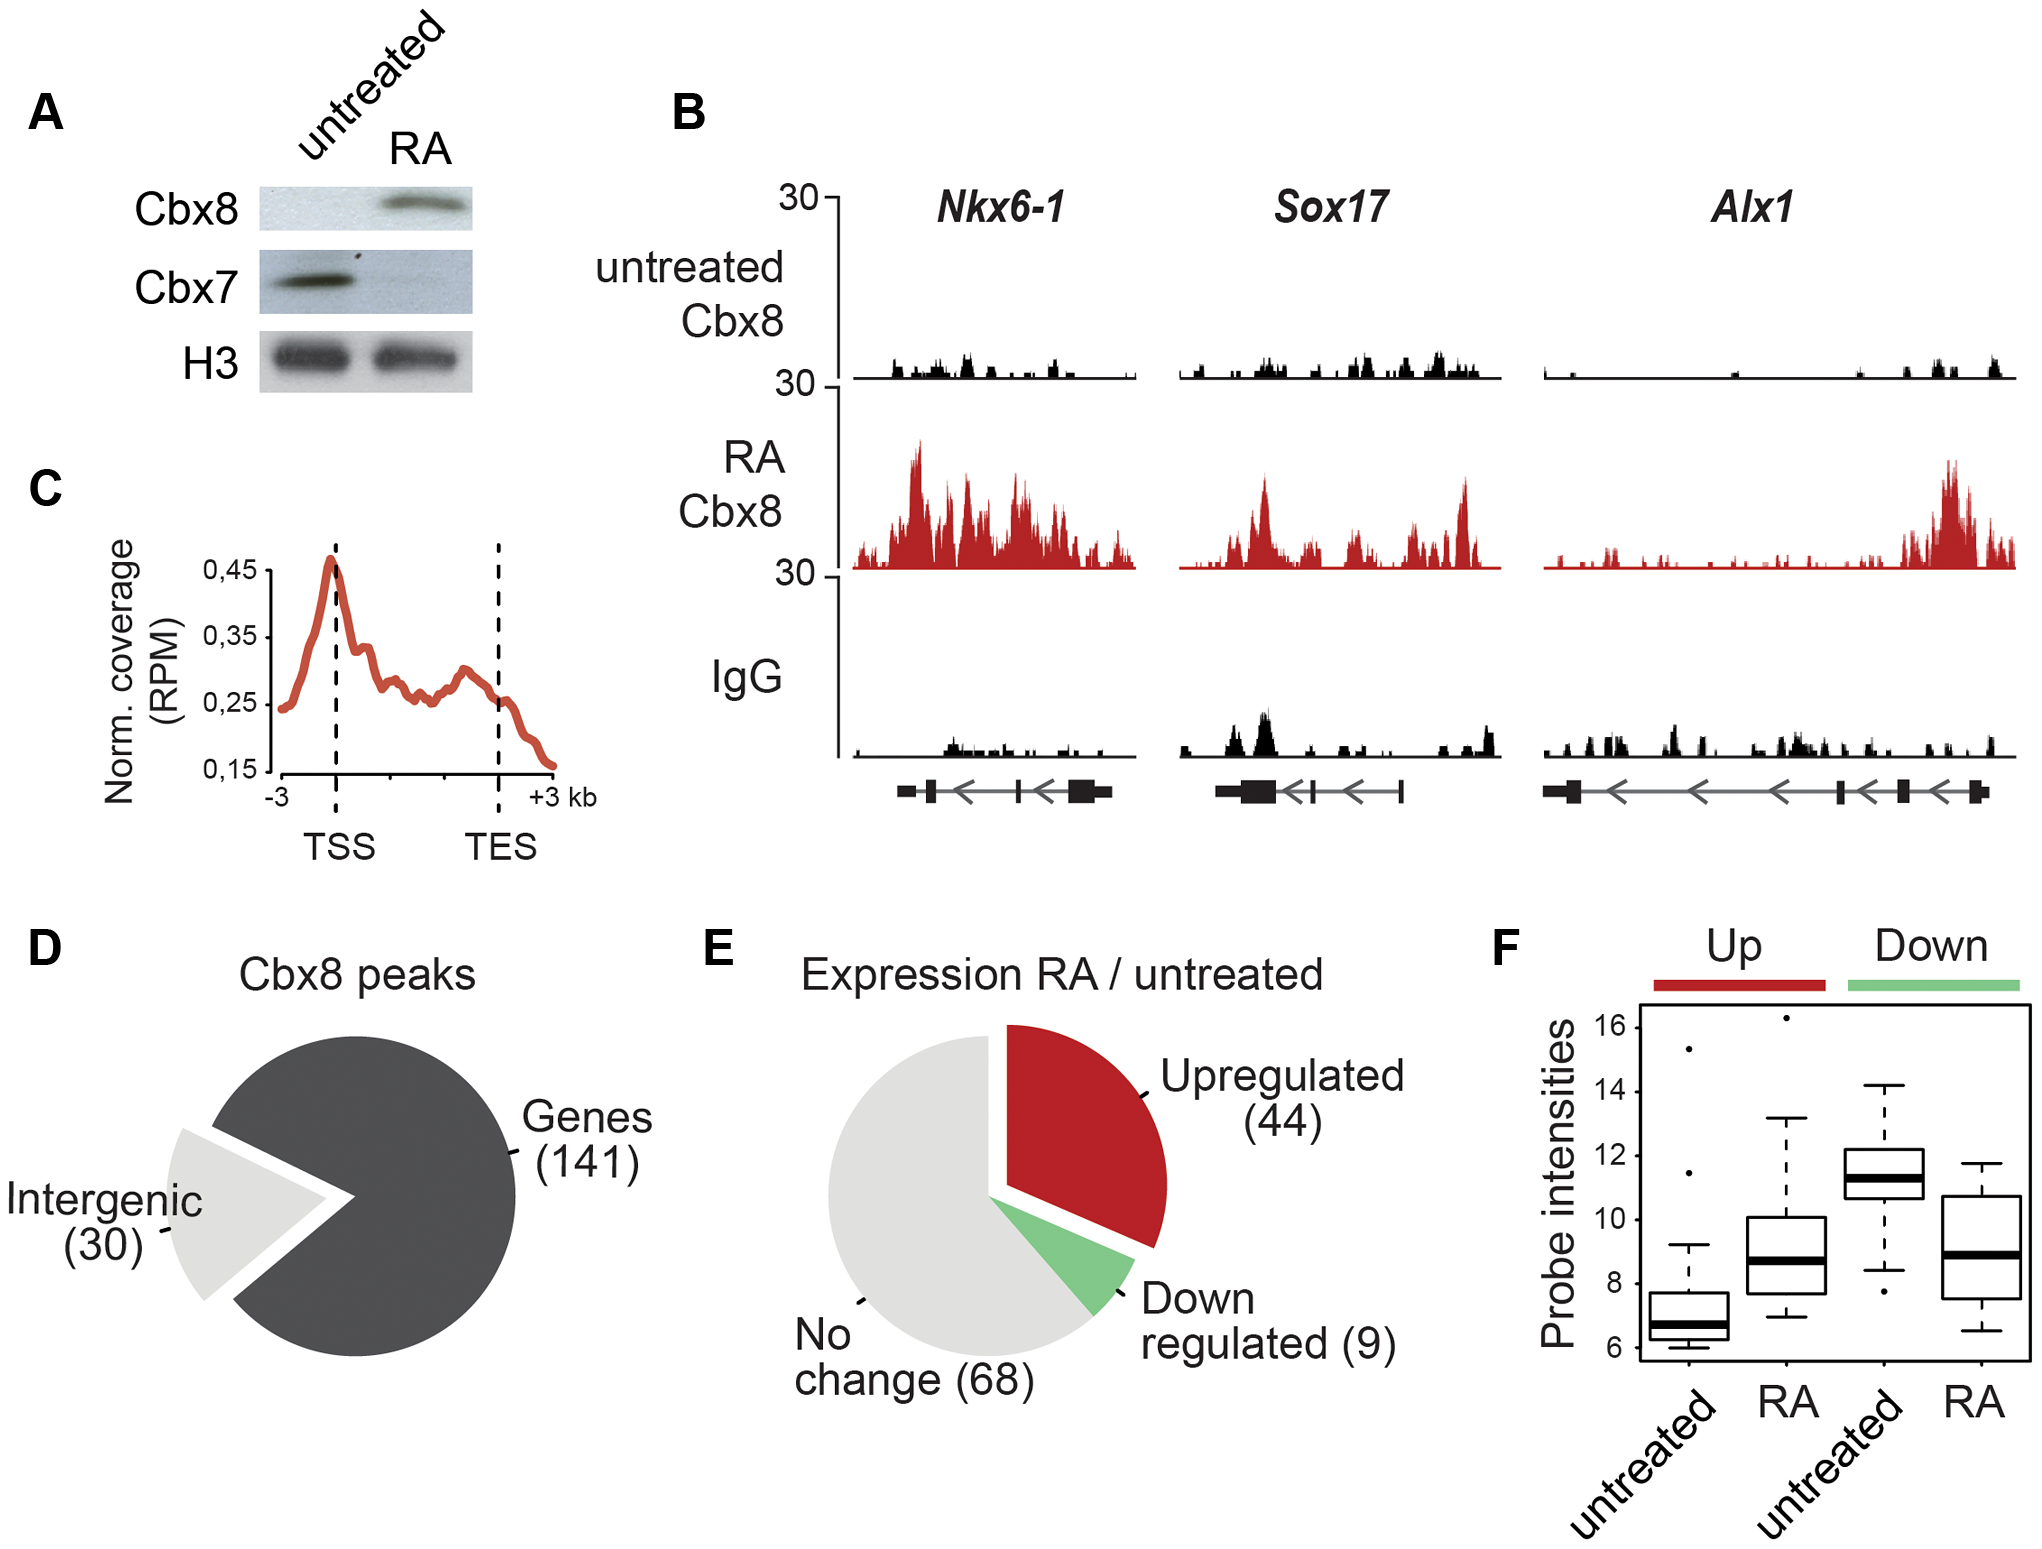 Cbx8 is upregulated and recruited to activated genes during ES cell differentiation.